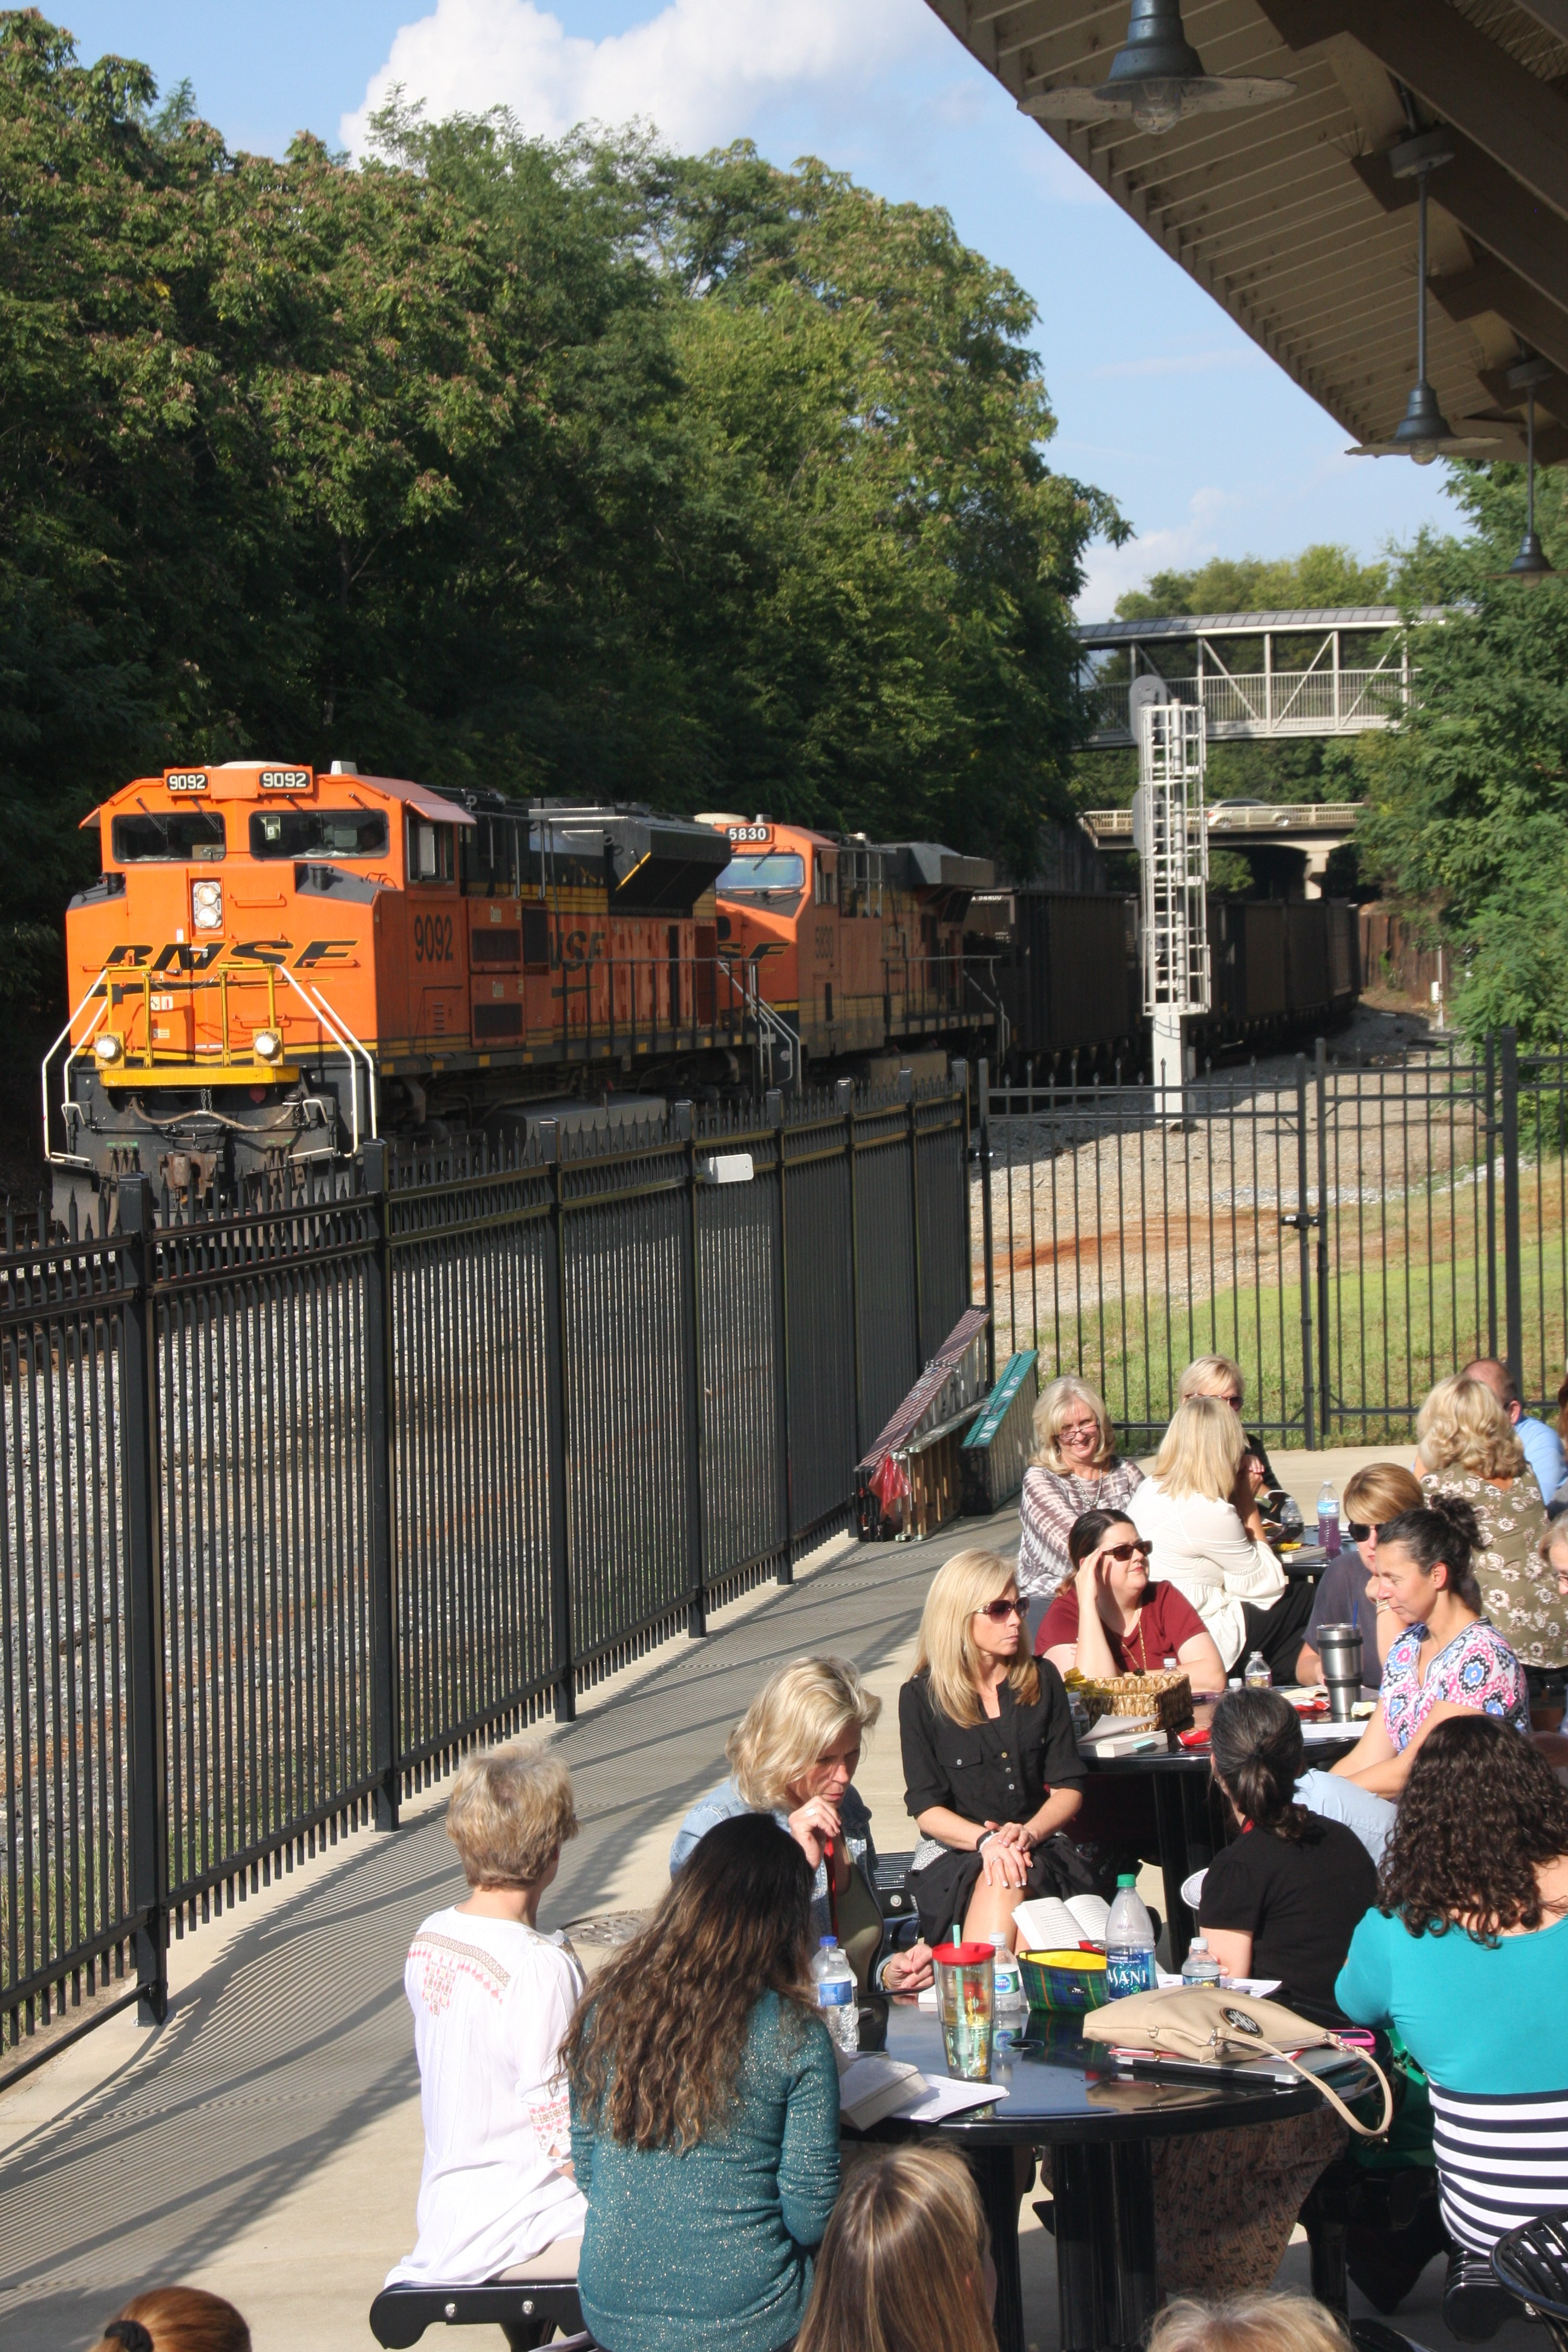 Book study members pause for a train to pass at the second session held at Decatur's Historic Train Depot.